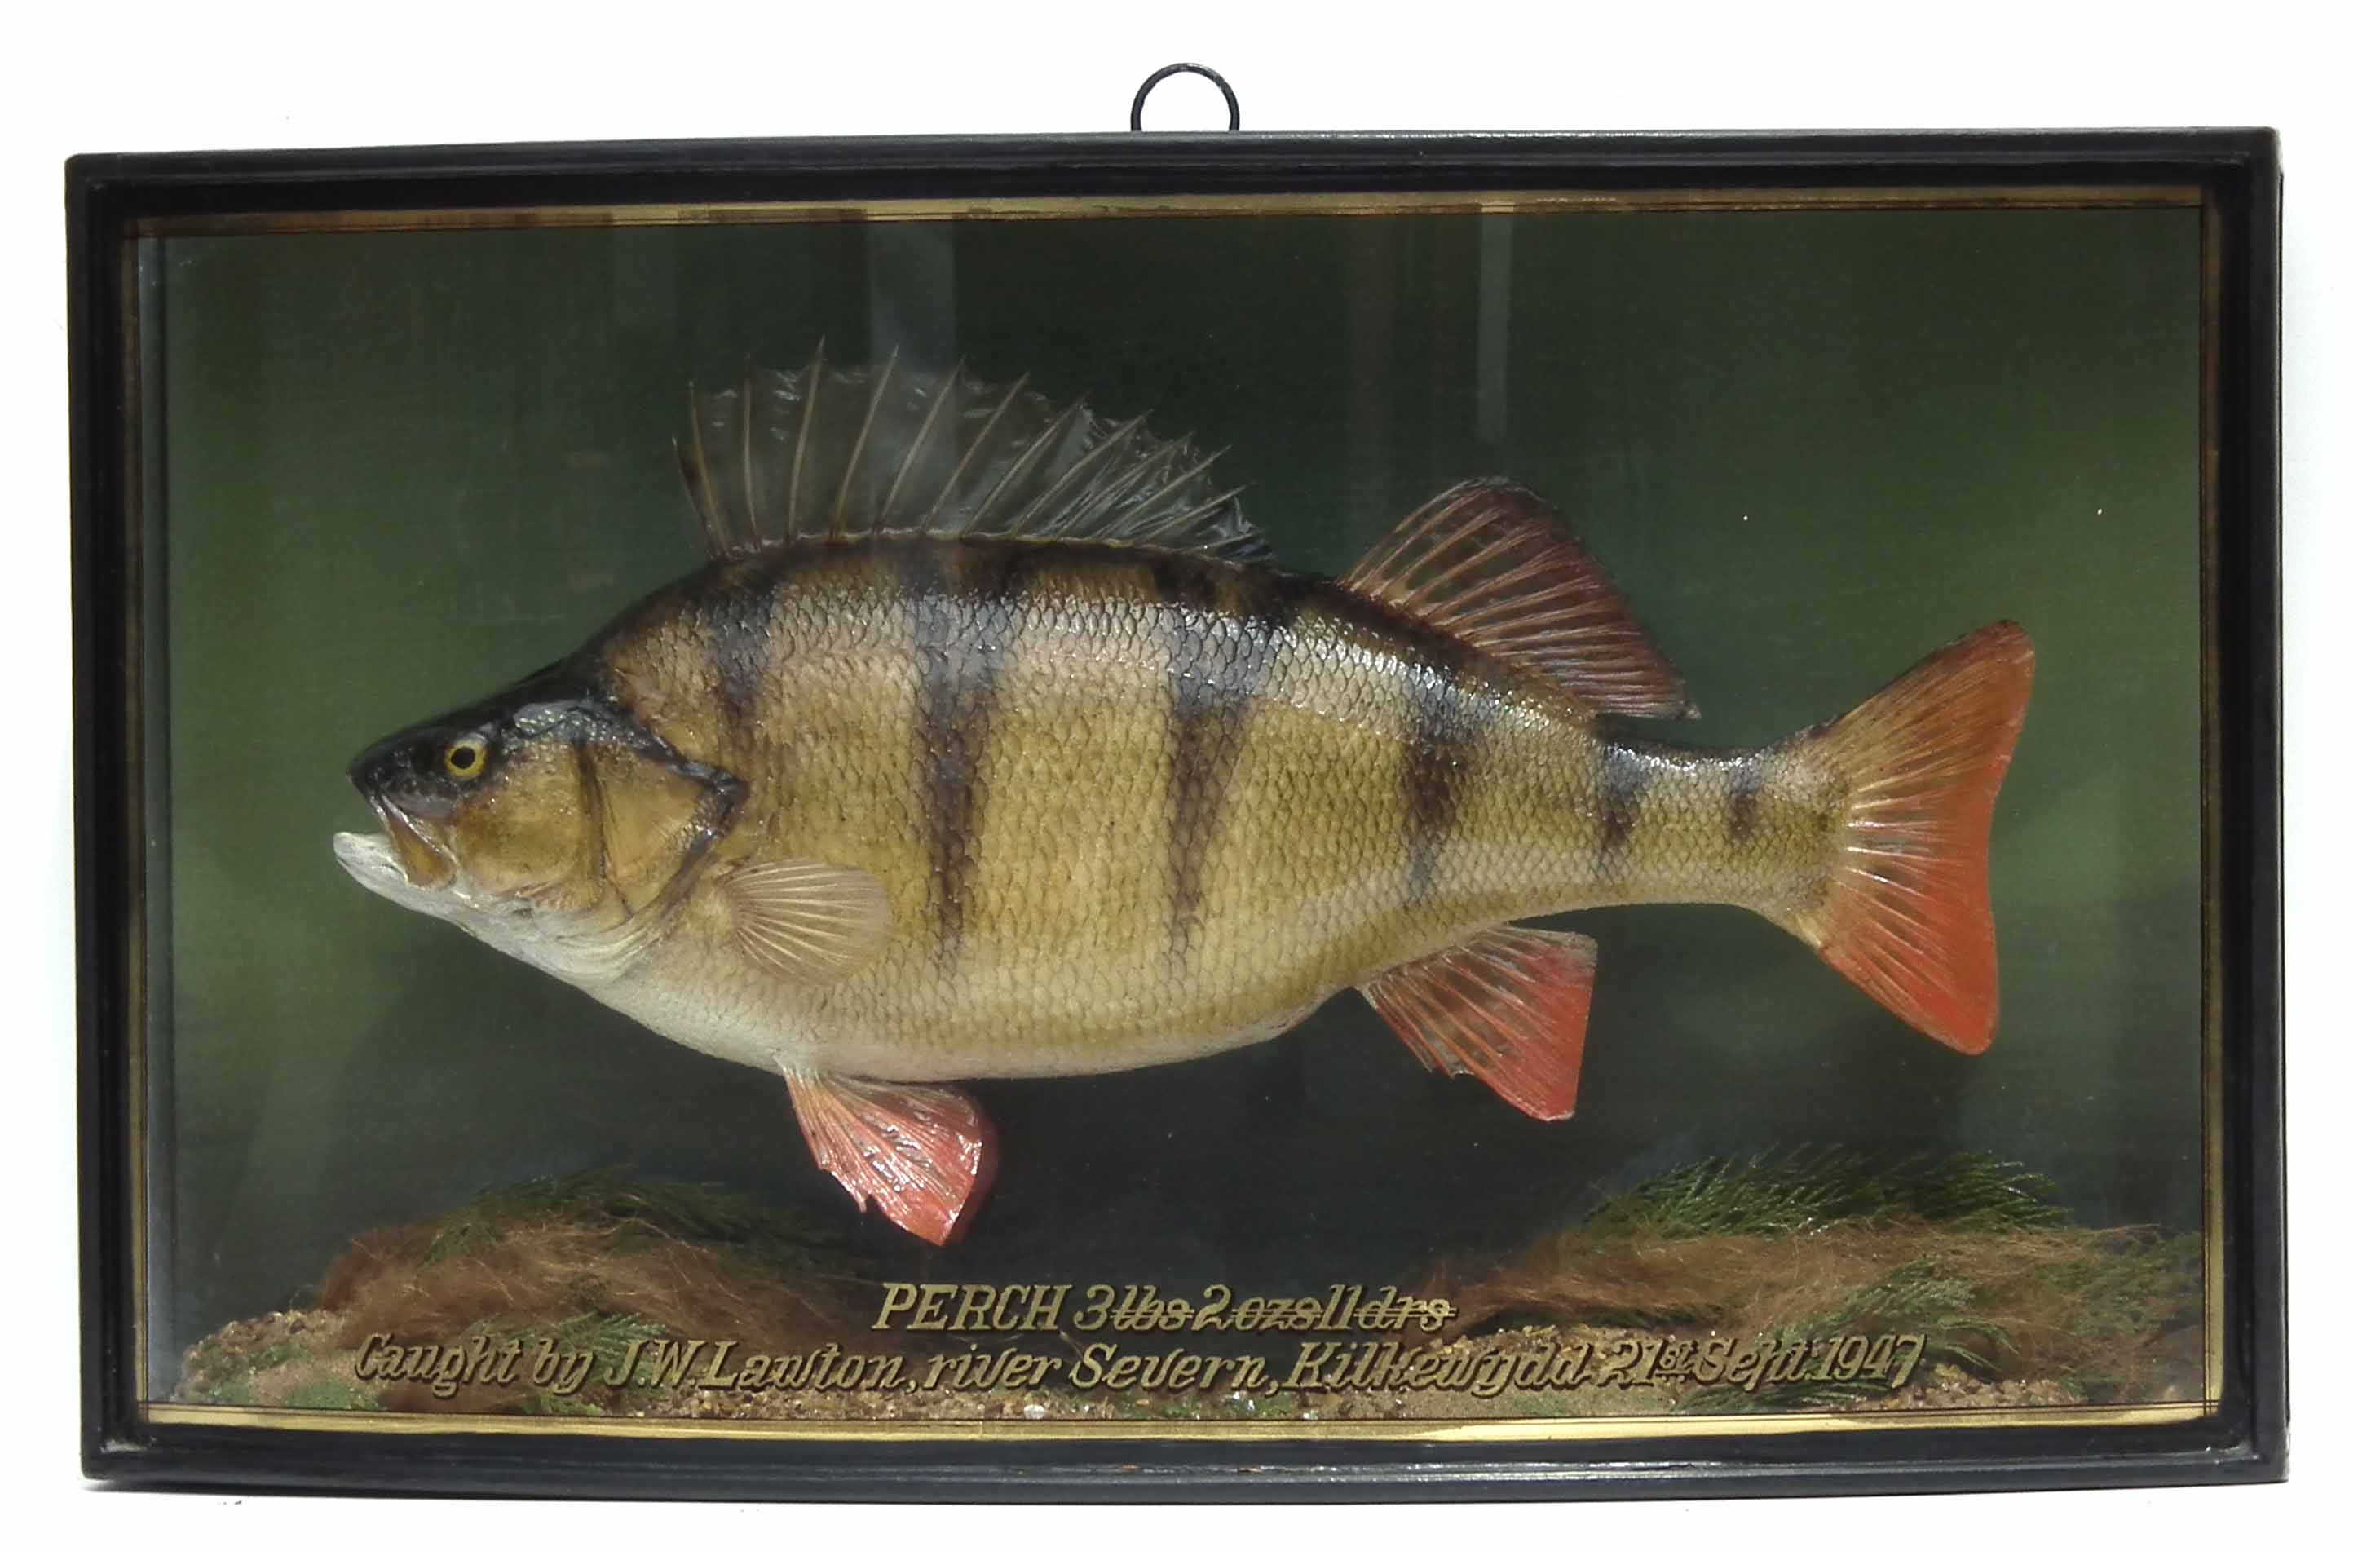 J. Cooper & Sons cased taxidermy Perch